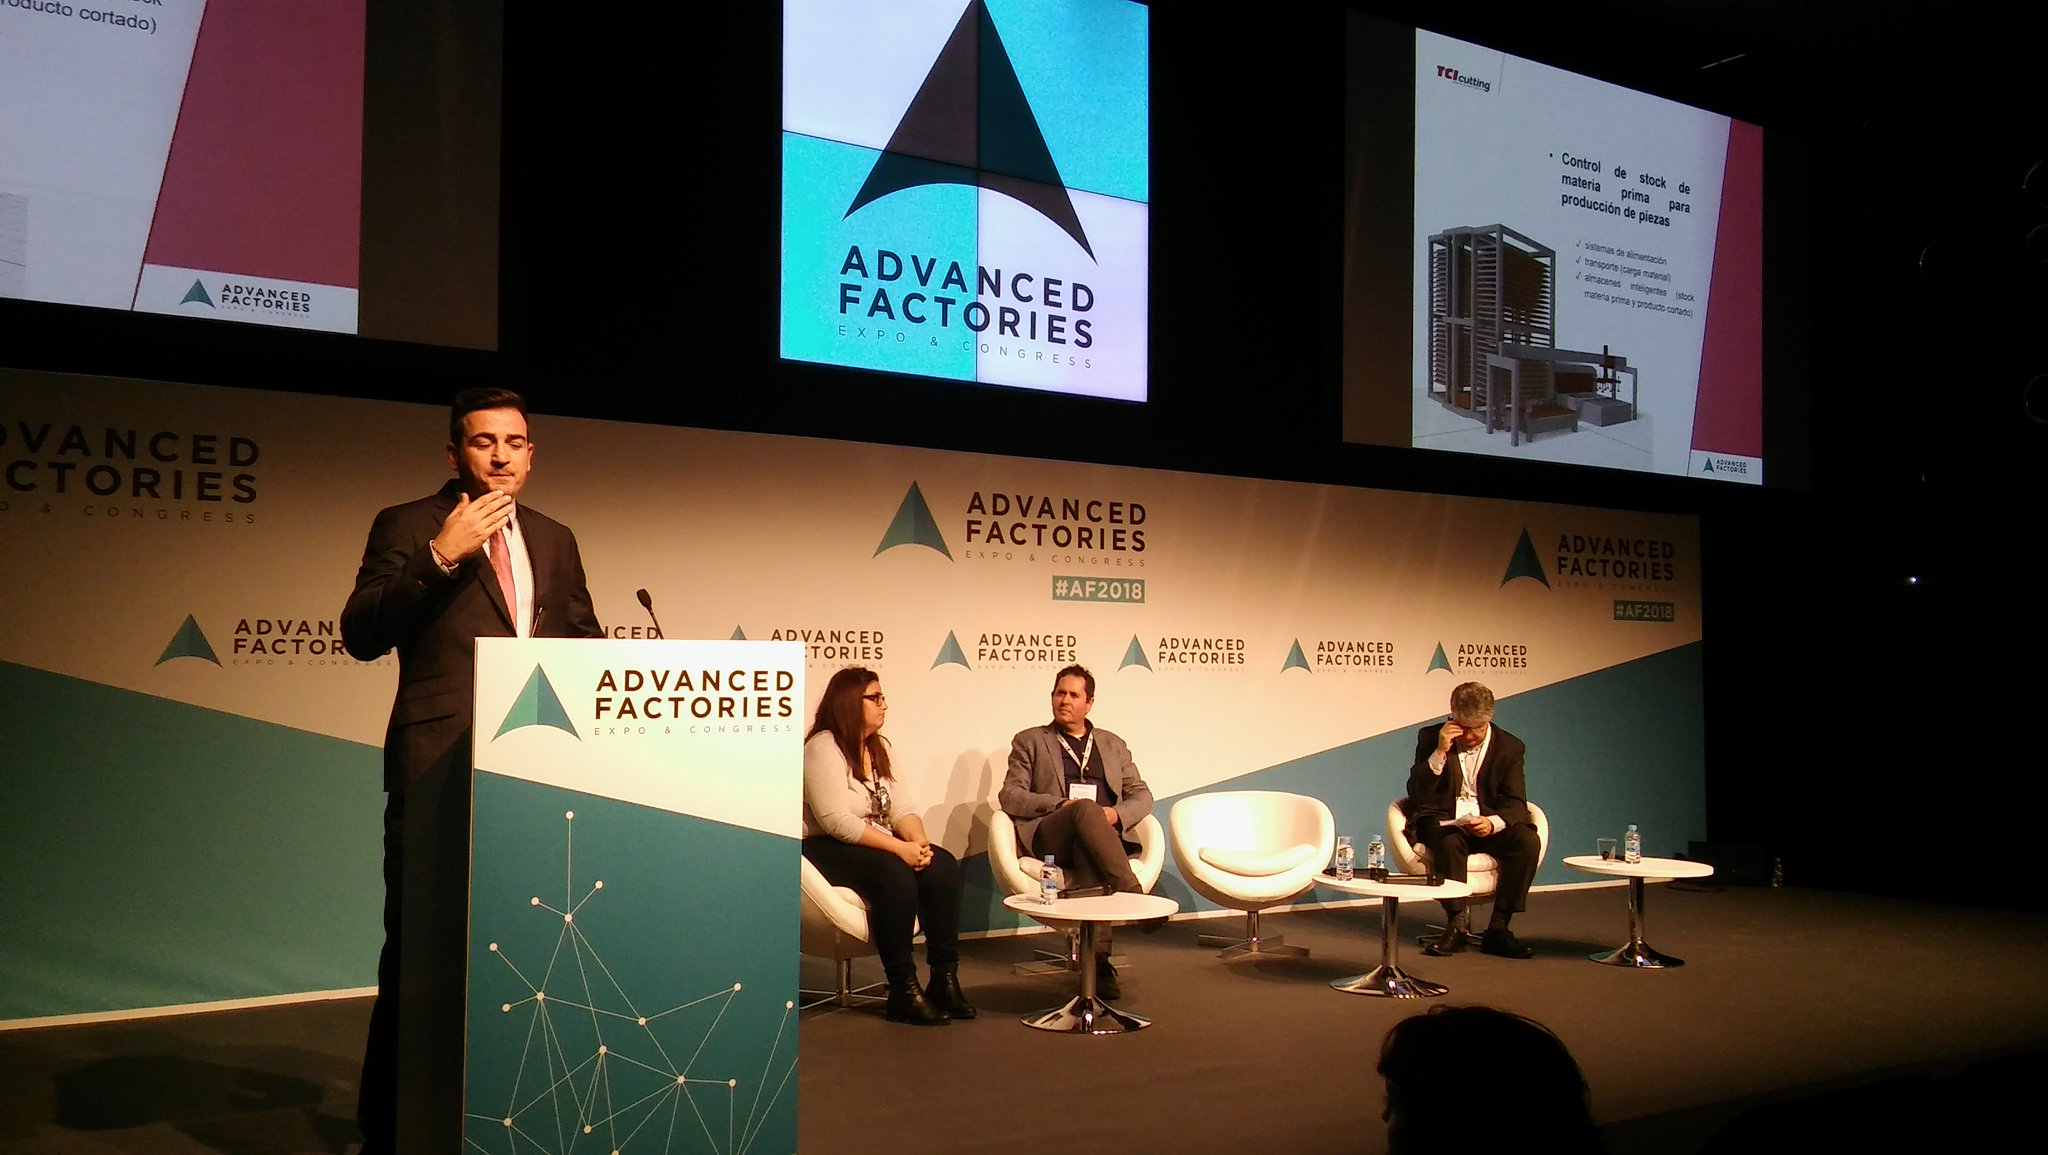 Foto charla Advanced Factories 2018 Xabier Iturralde